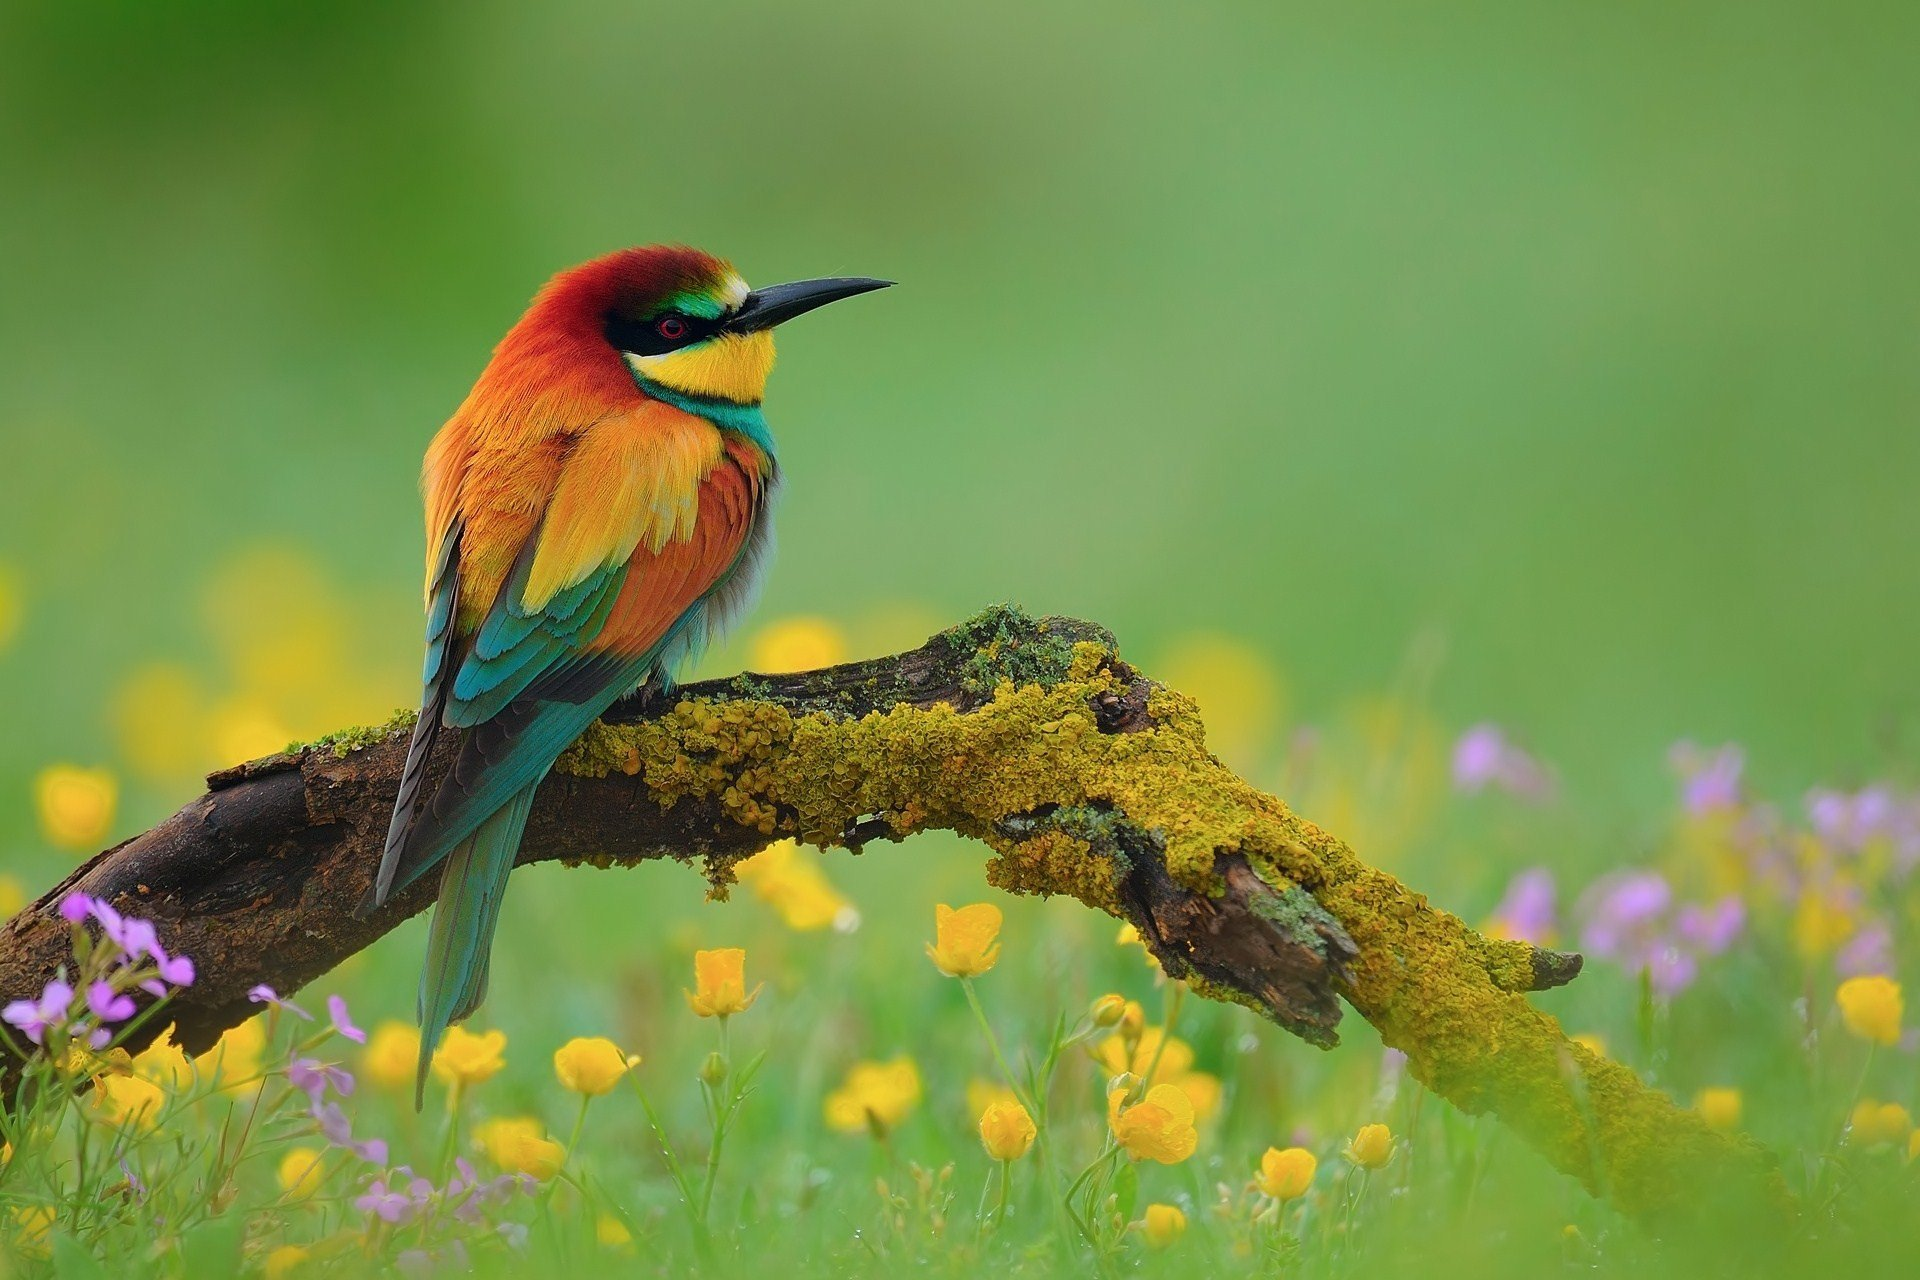 animal bird national geographic green flower hd wallpapers wallpaper